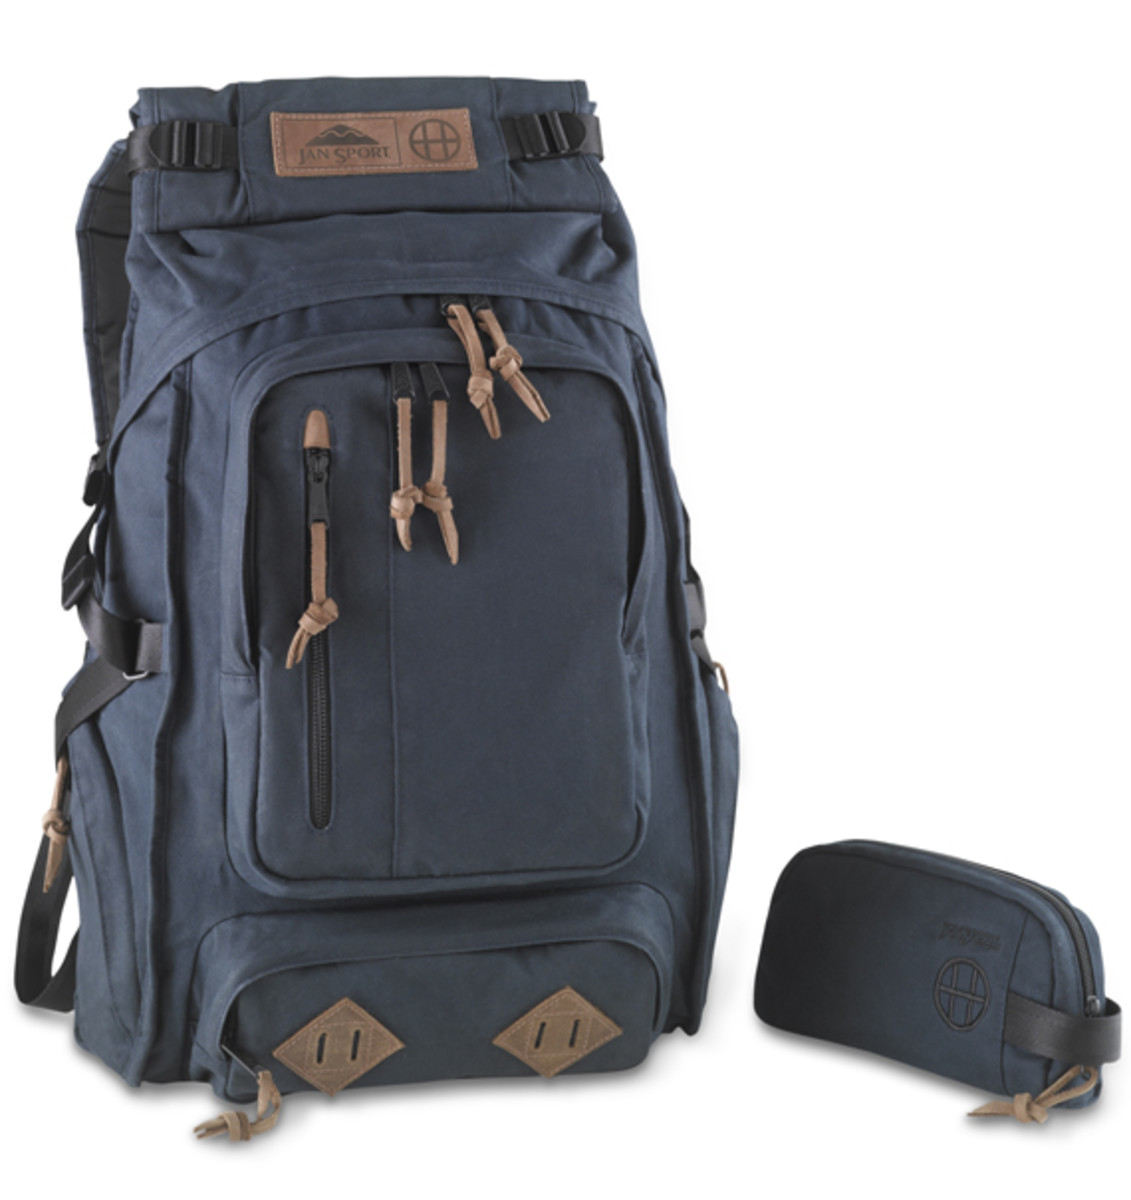 HUF-JanSport-Roll-Top-Backpack-01